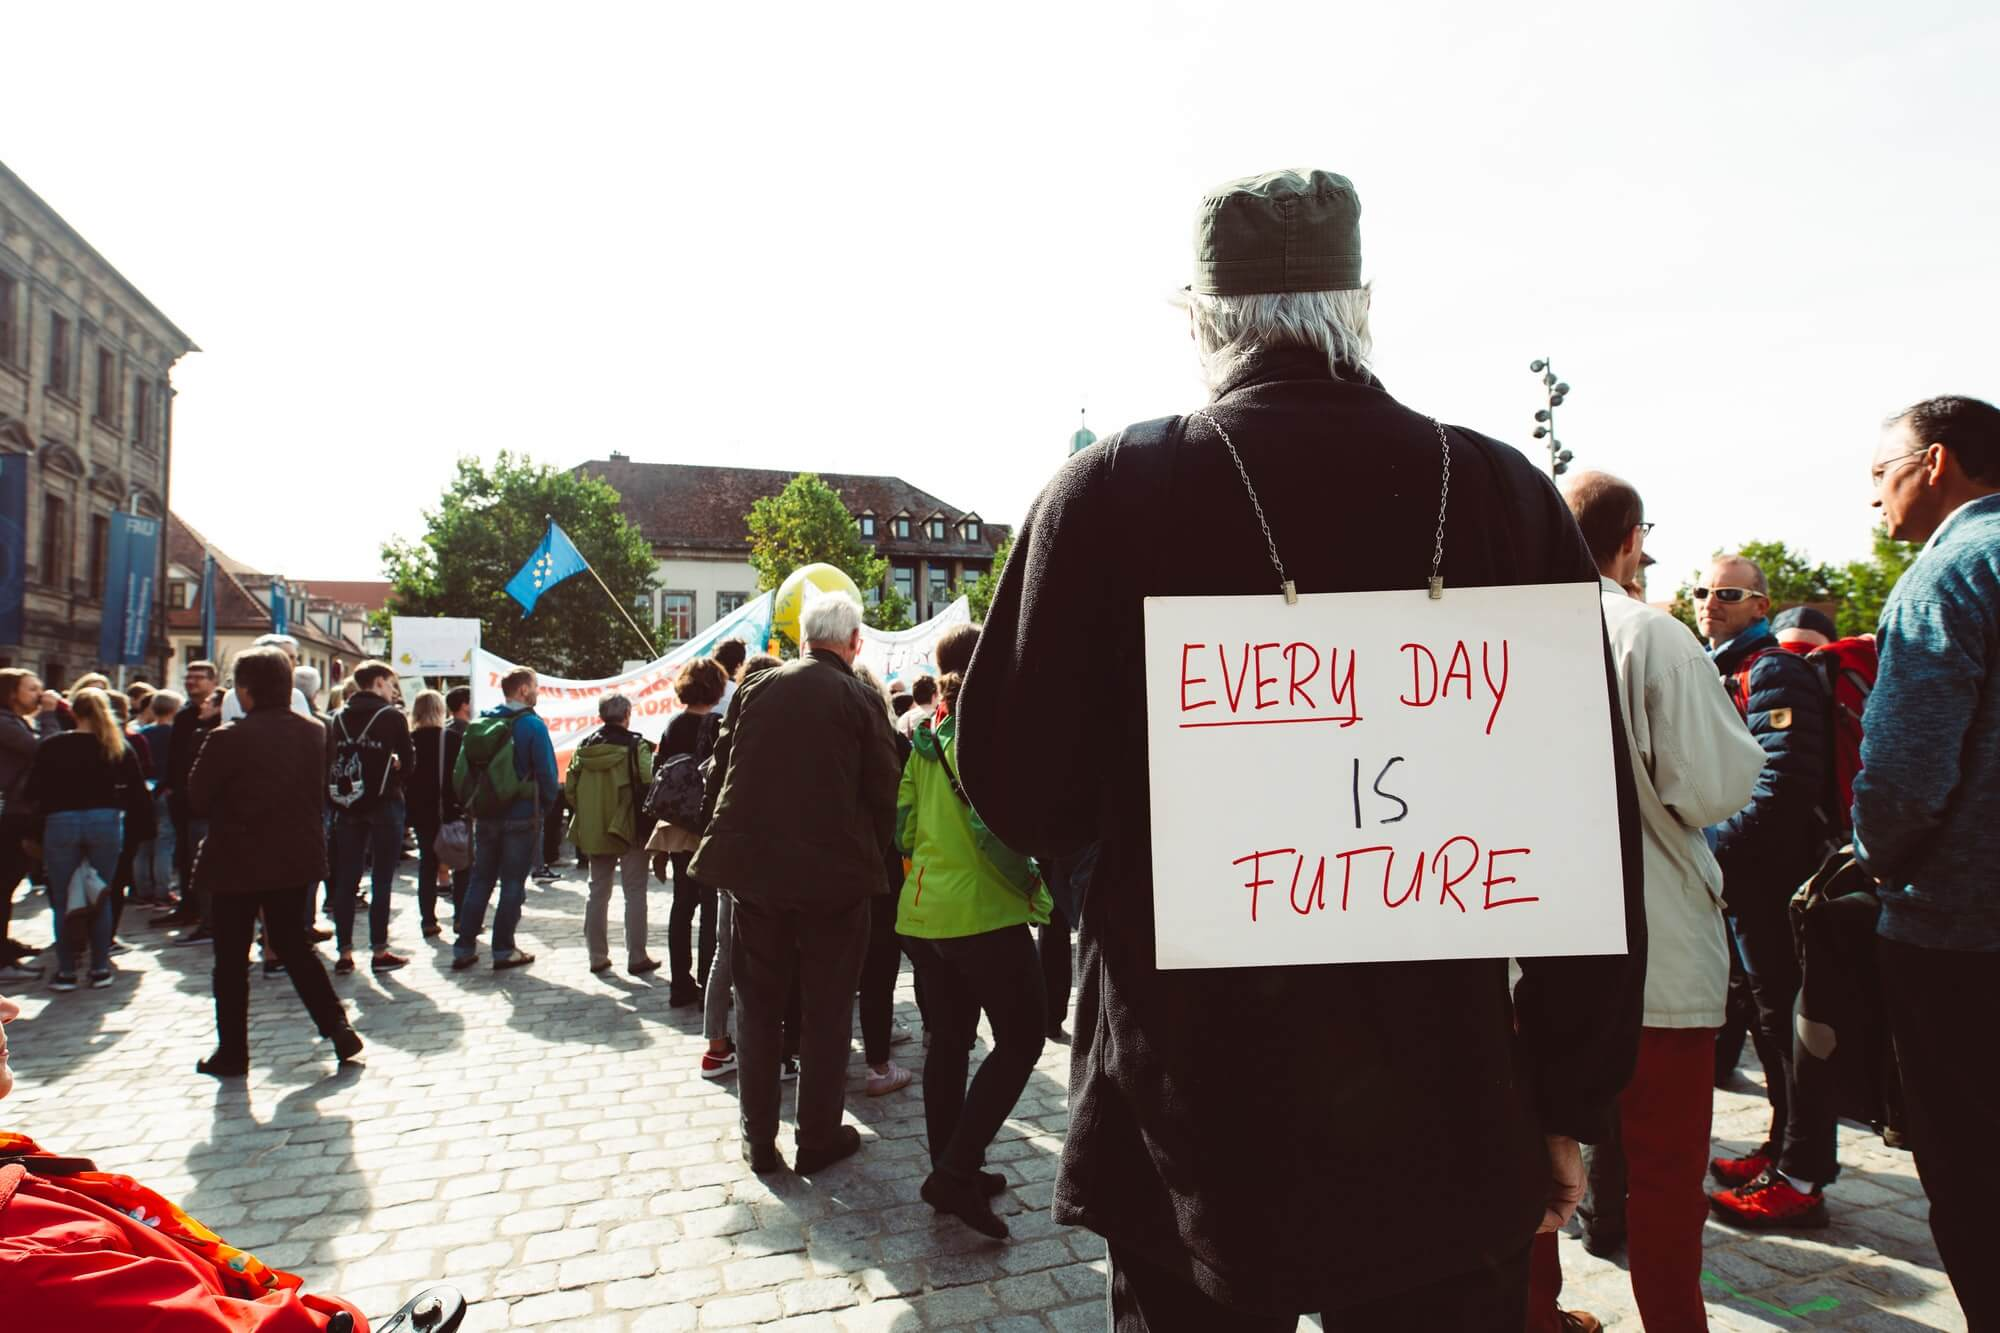 EVERY DAY IS FUTURE. Global climate change strike - No Planet B - Global Climate Strike 09-20-2019